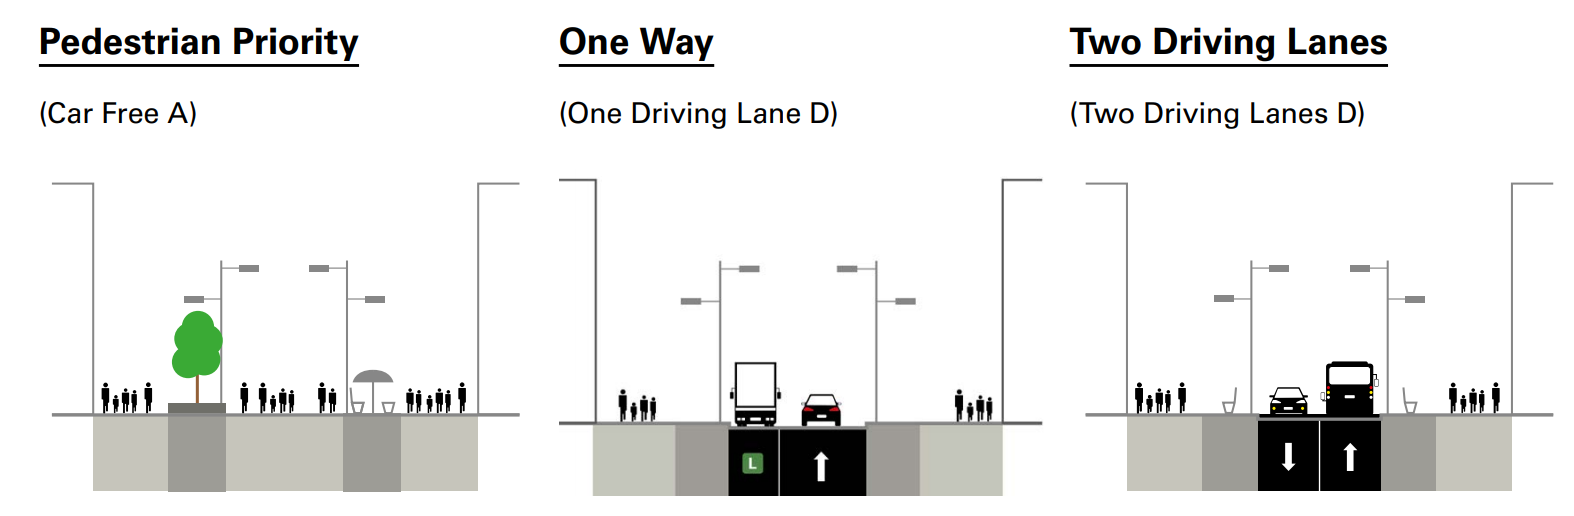 Three different cross-sections of Yonge Street. Pedestrian Priority, One Way for cars, and Two Driving Lanes.